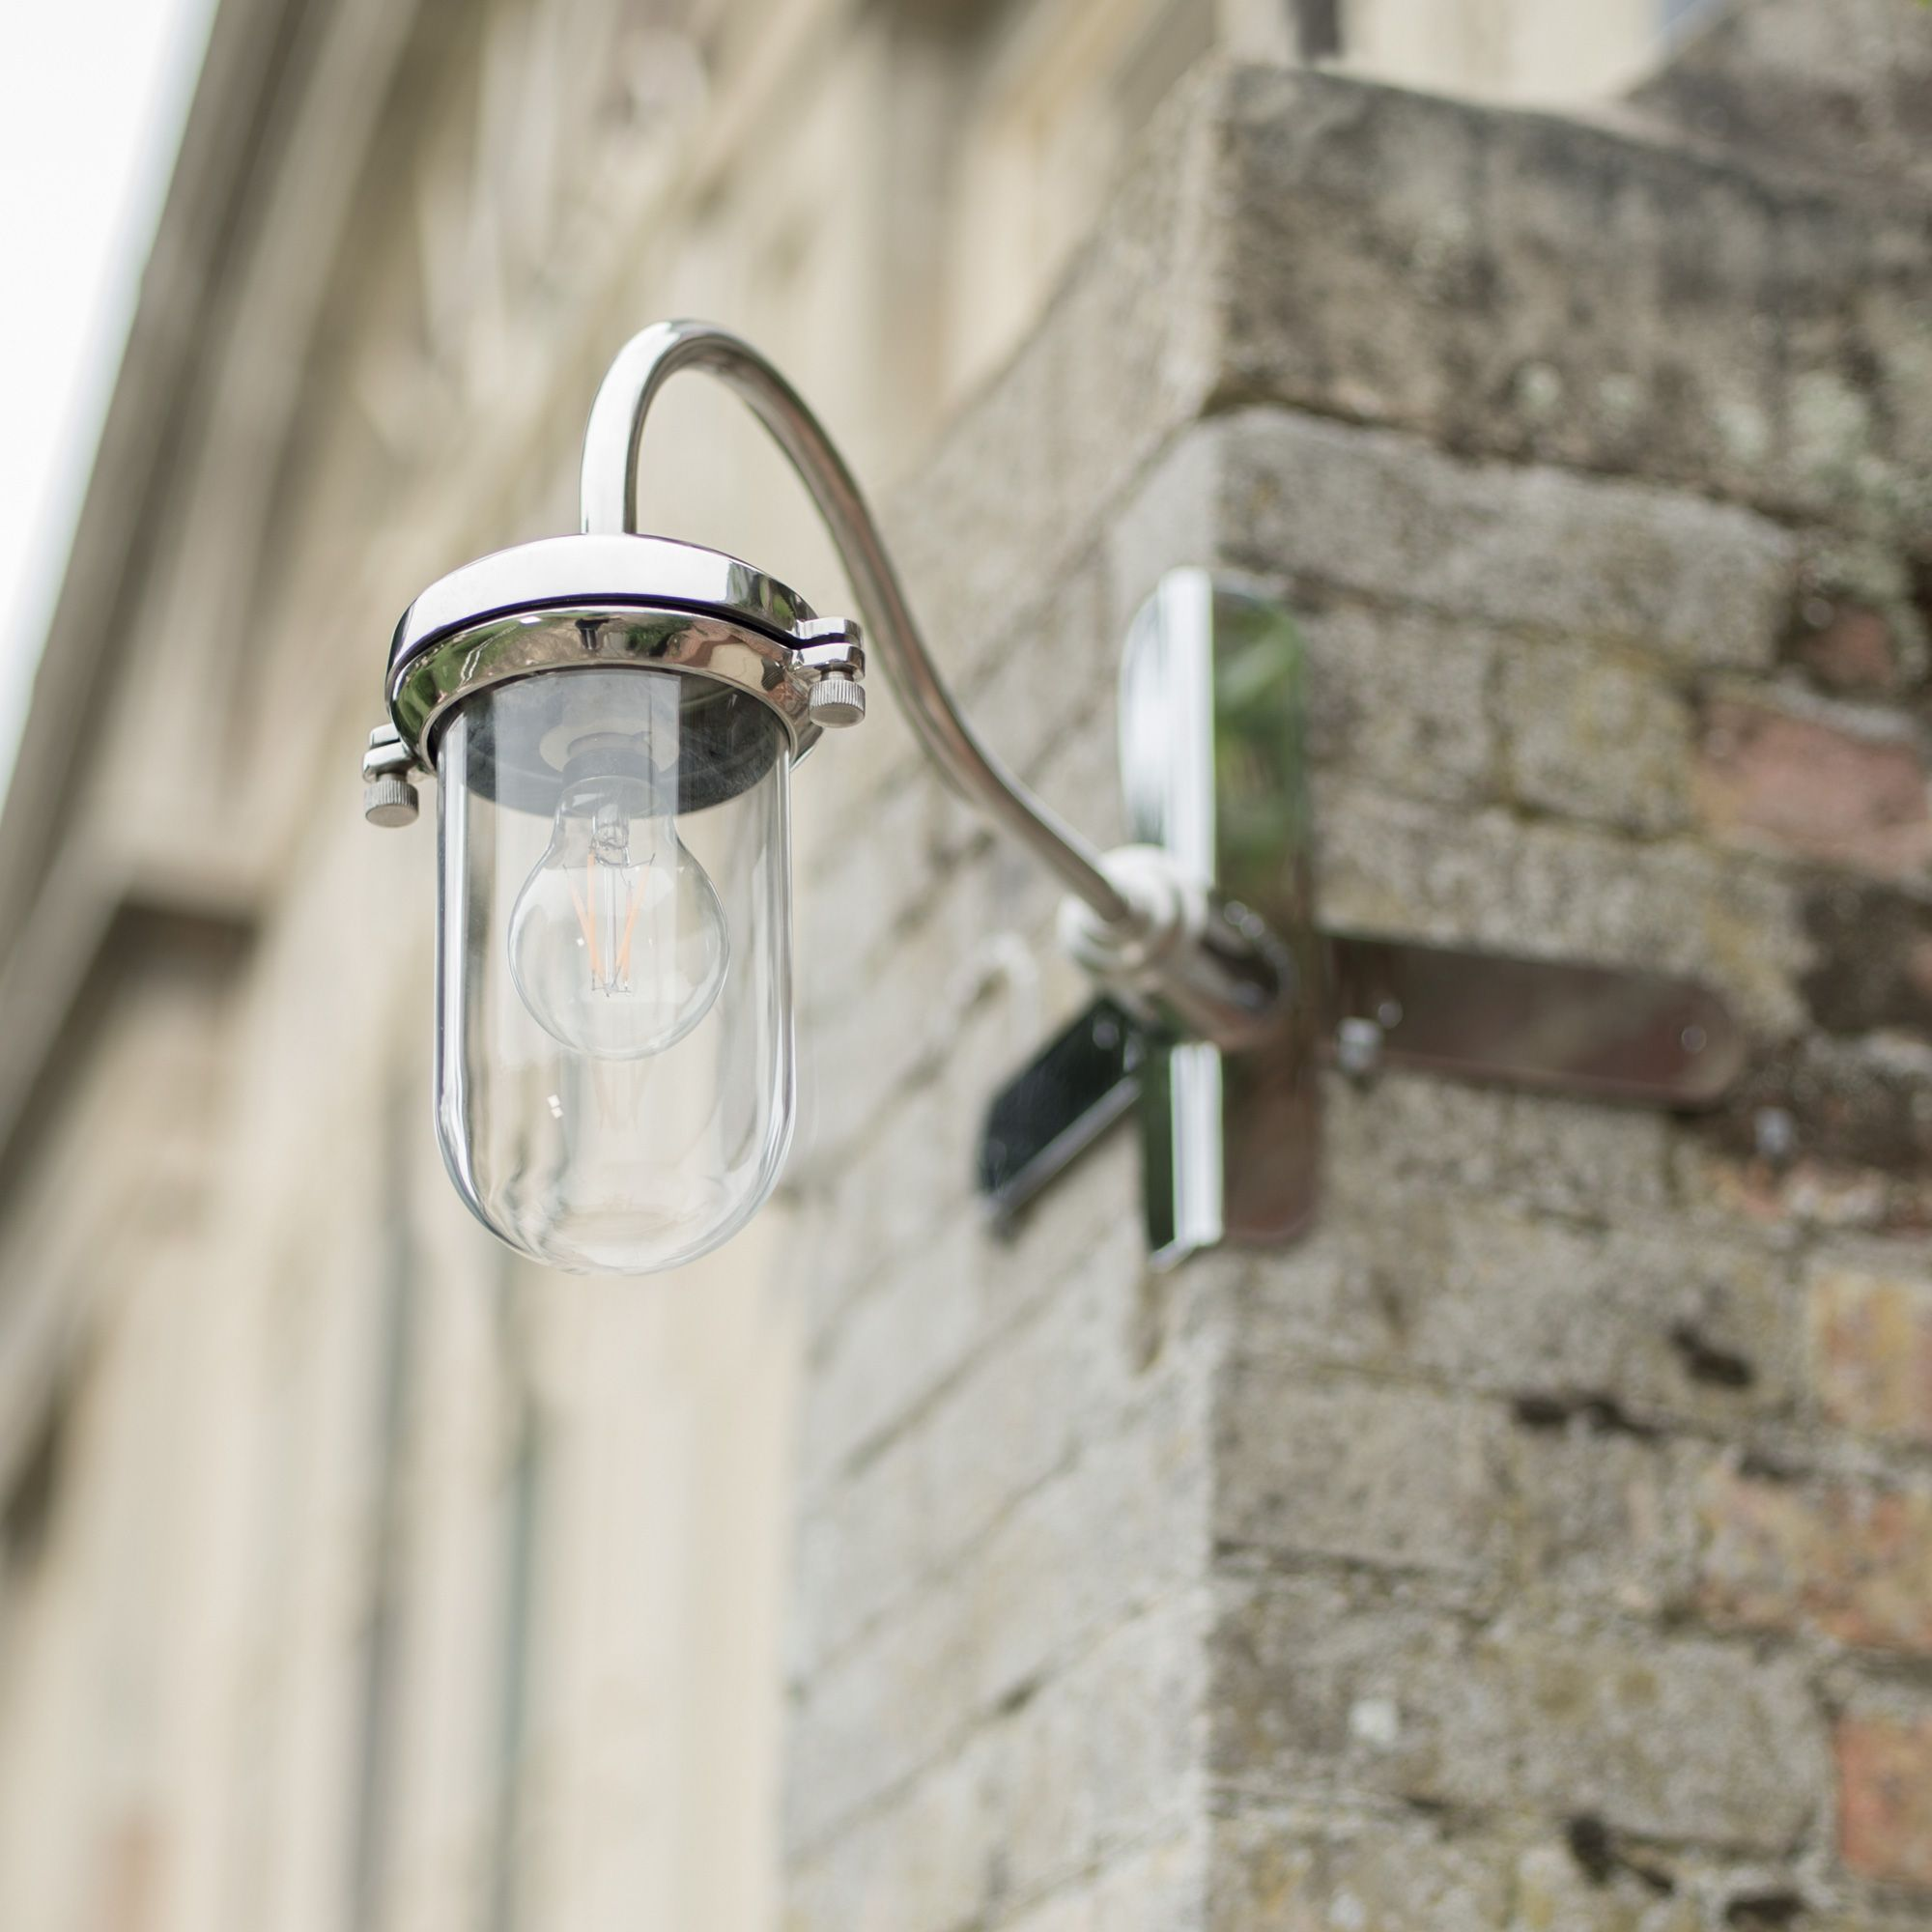 This stainless steel outdoor light is perfect for being corner this stainless steel outdoor light is perfect for being corner aloadofball Gallery